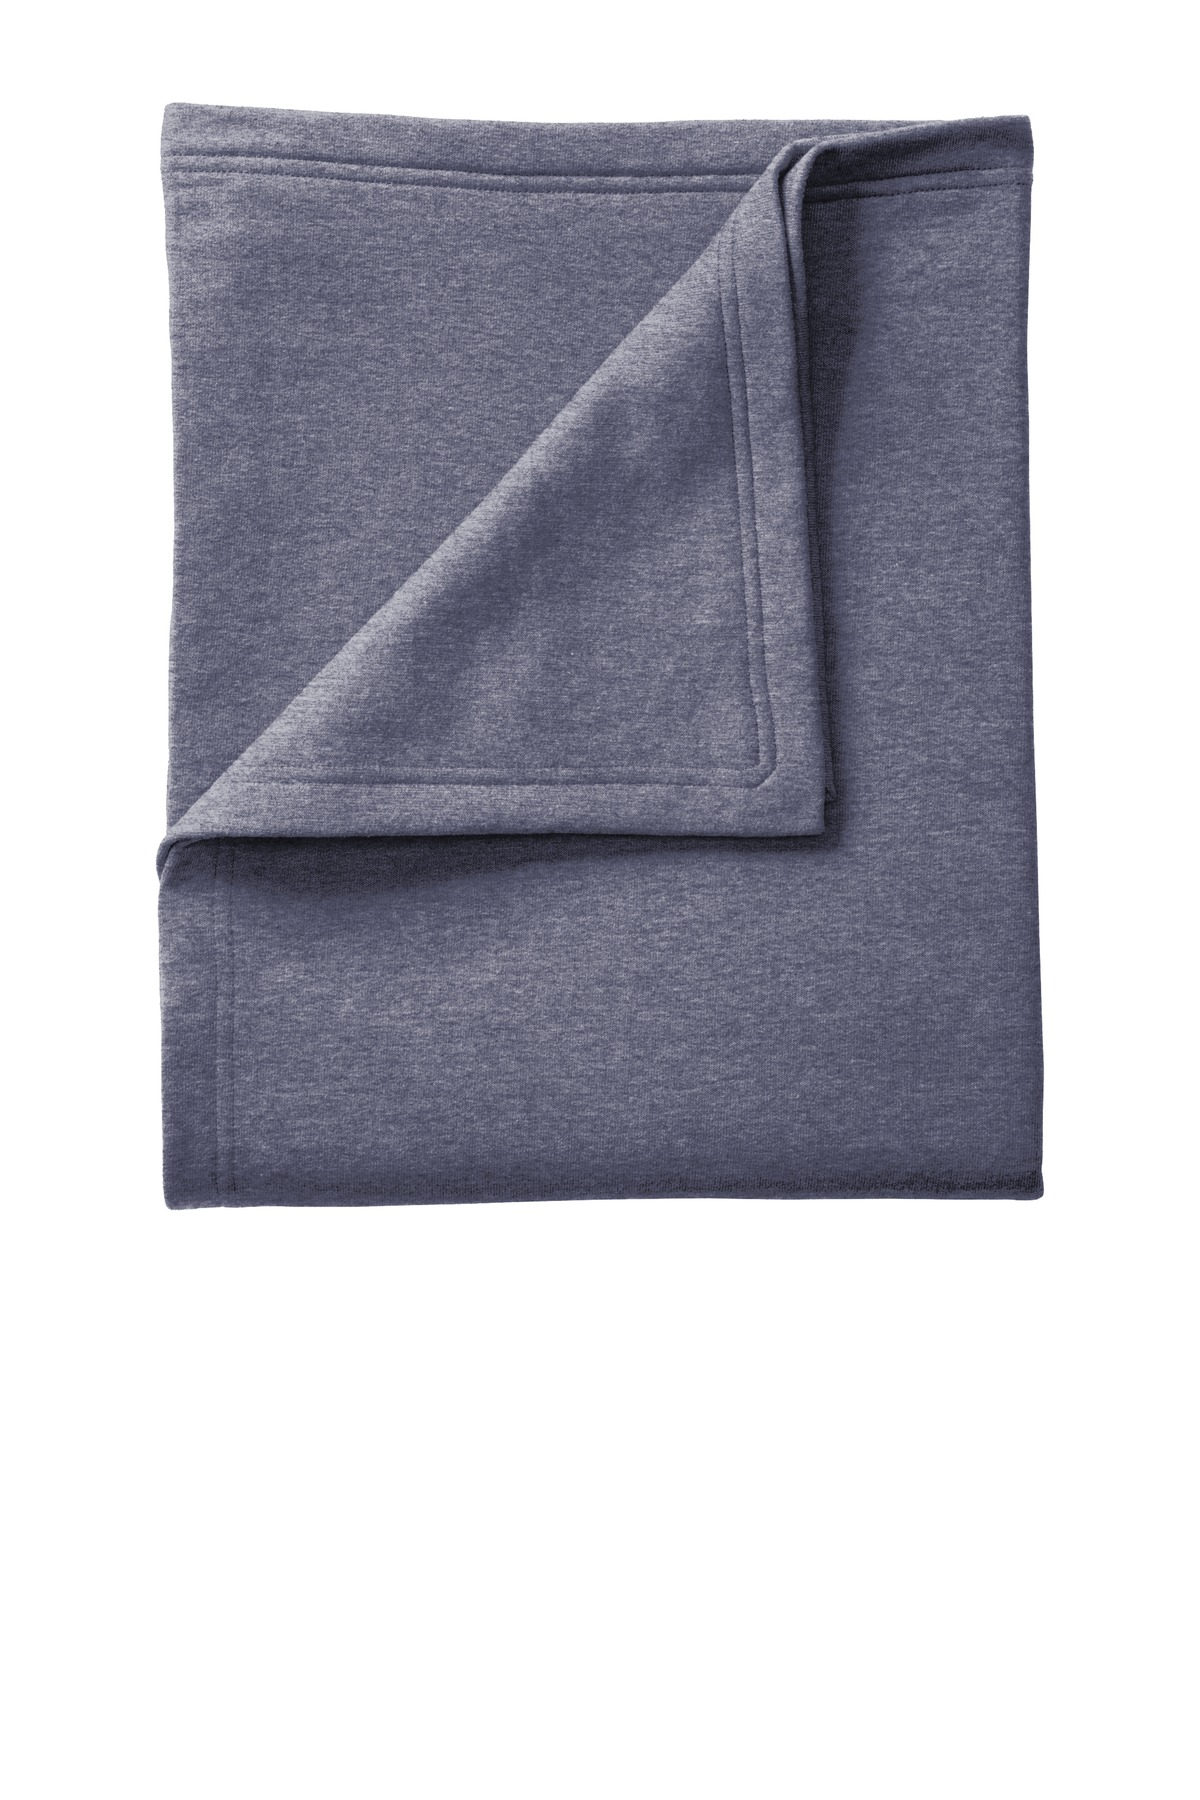 Port & Company ®  Core Fleece Sweatshirt Blanket. BP78 - Heather Navy